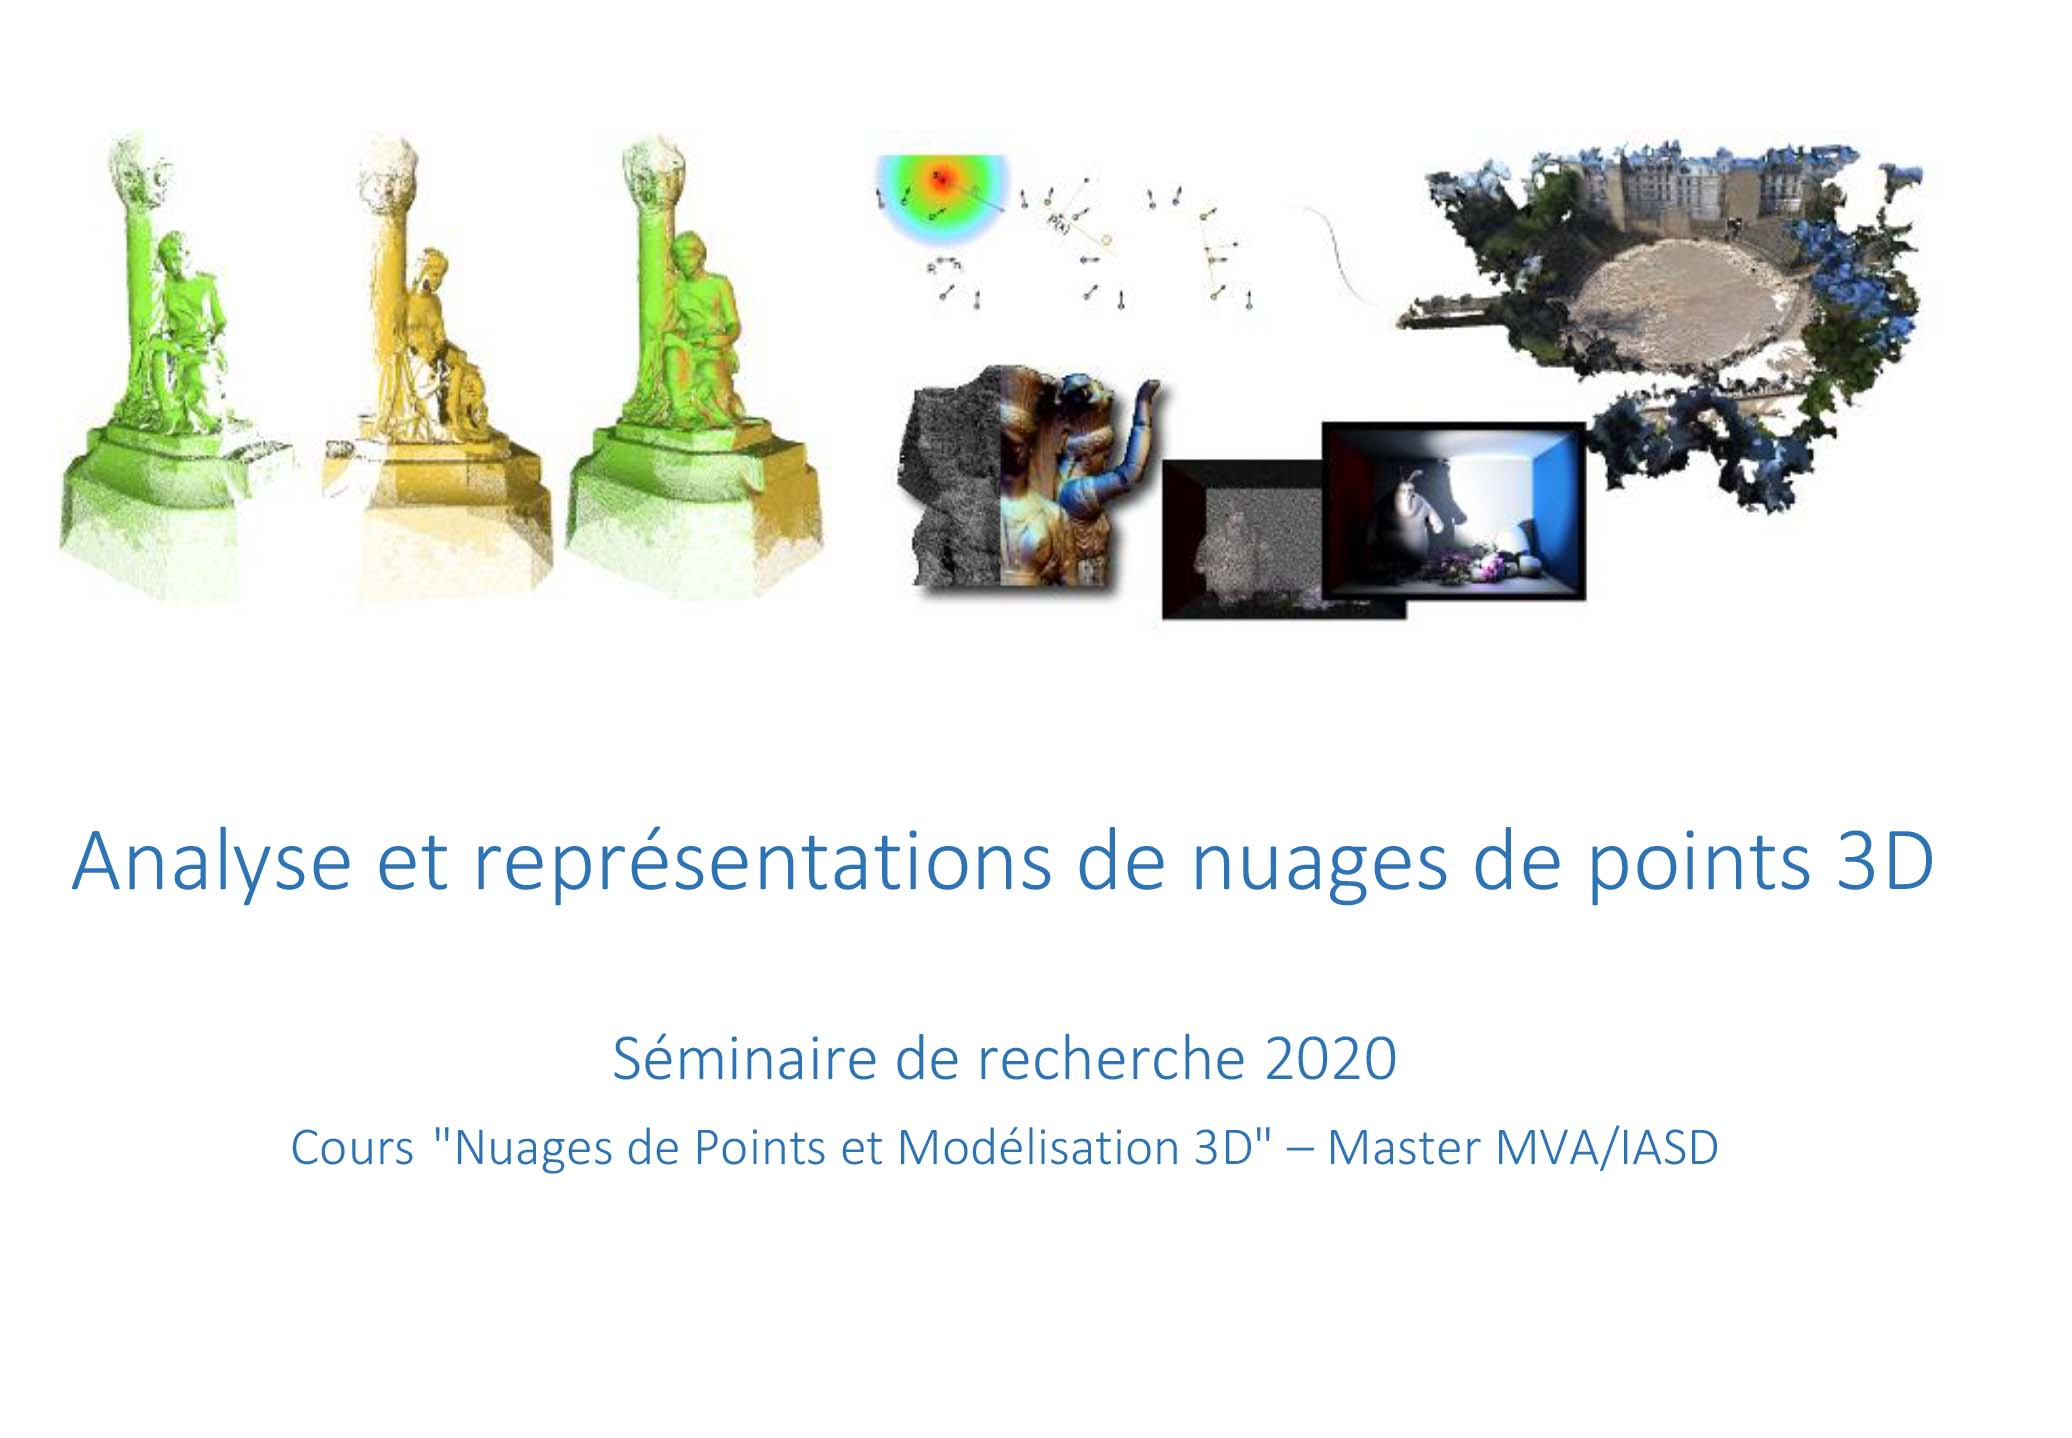 Analyses & représentations de nuages de points 3D